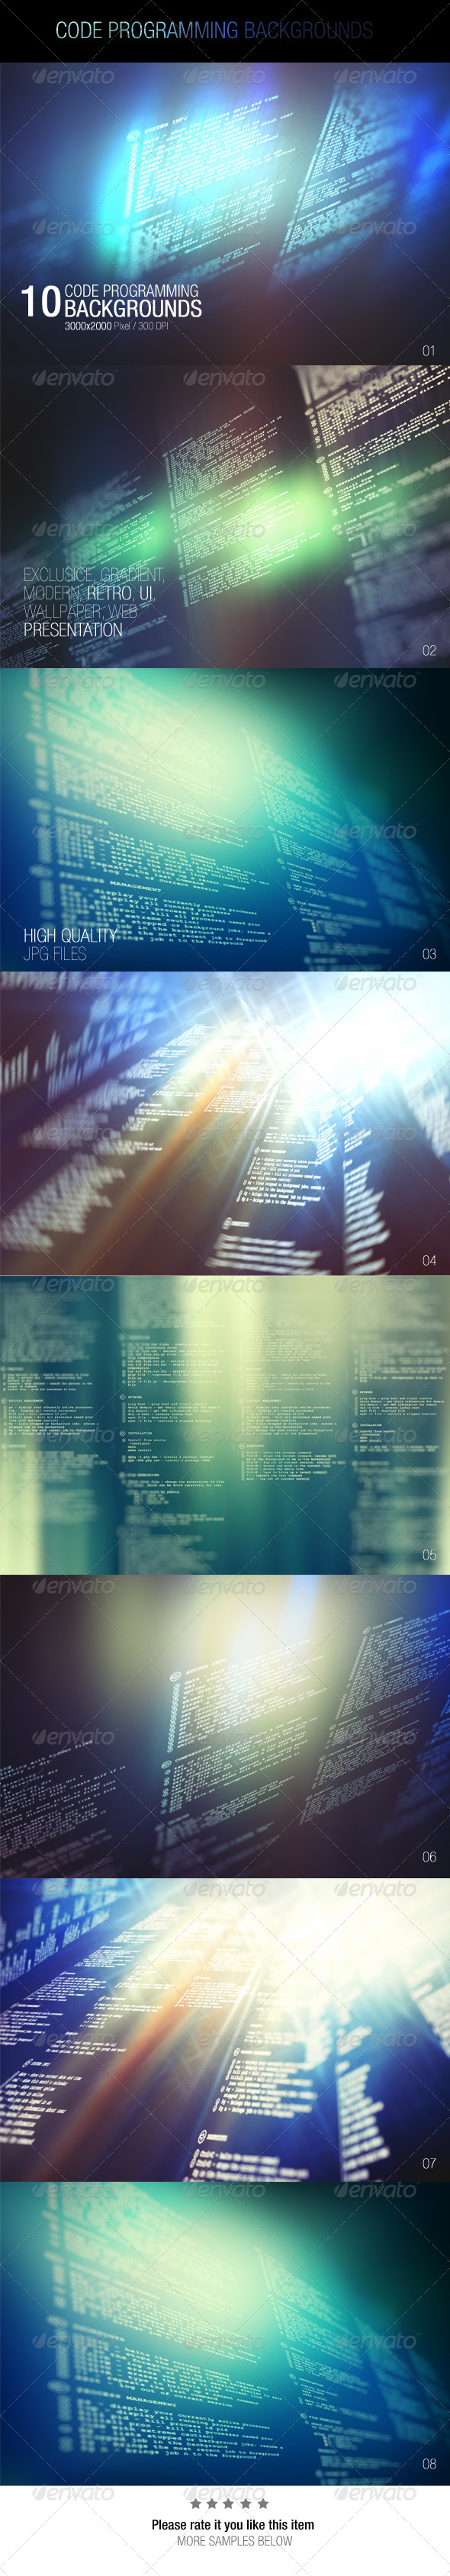 GraphicRiver Code Programming Backgrounds 7747170